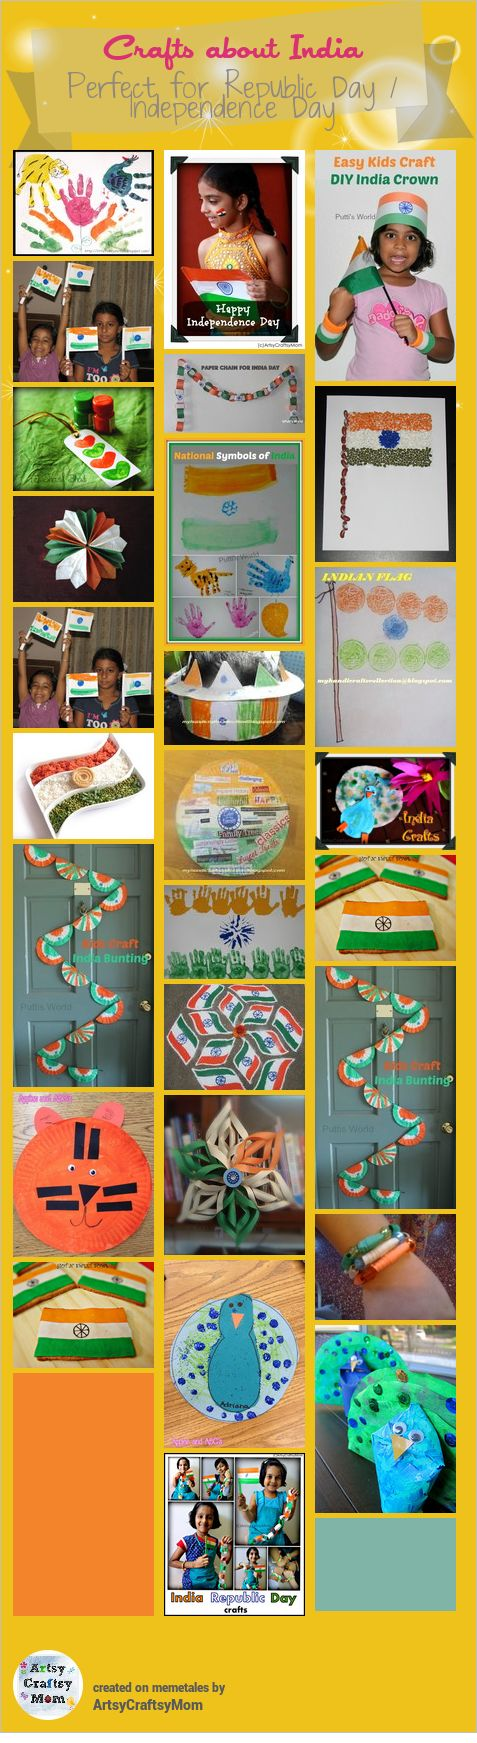 India Republic day Crafts